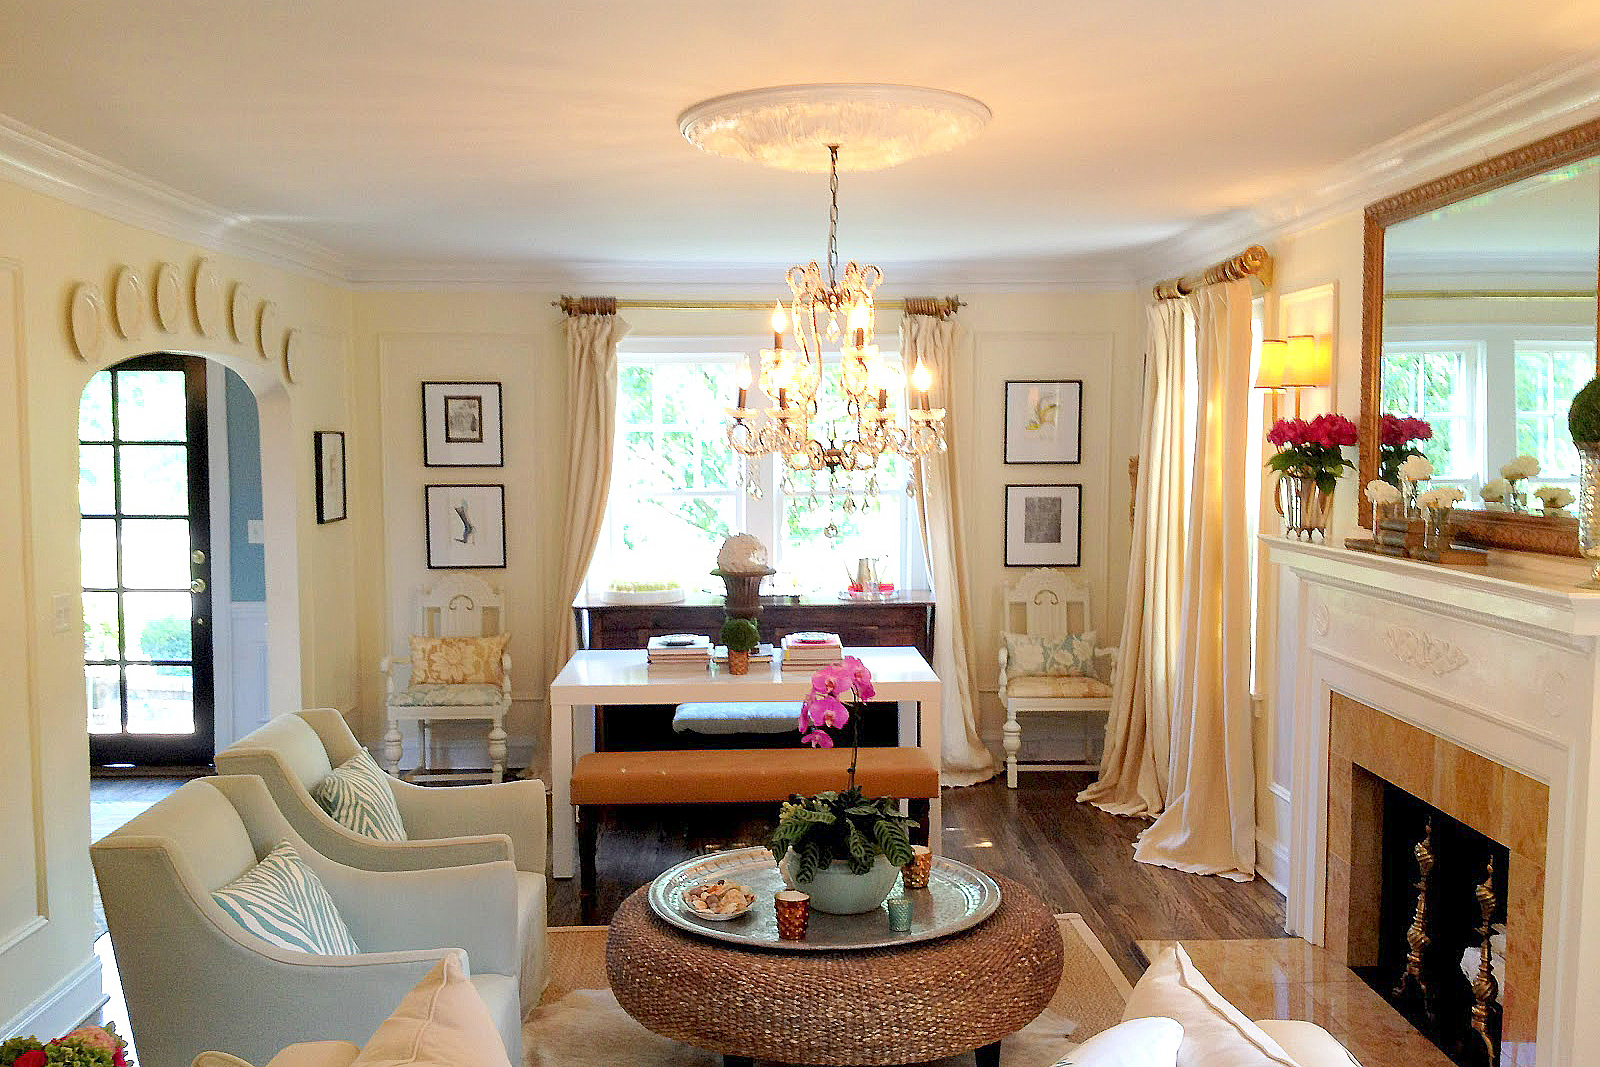 Ceiling Medallion in Living Room | Cheap Remodeling Ideas